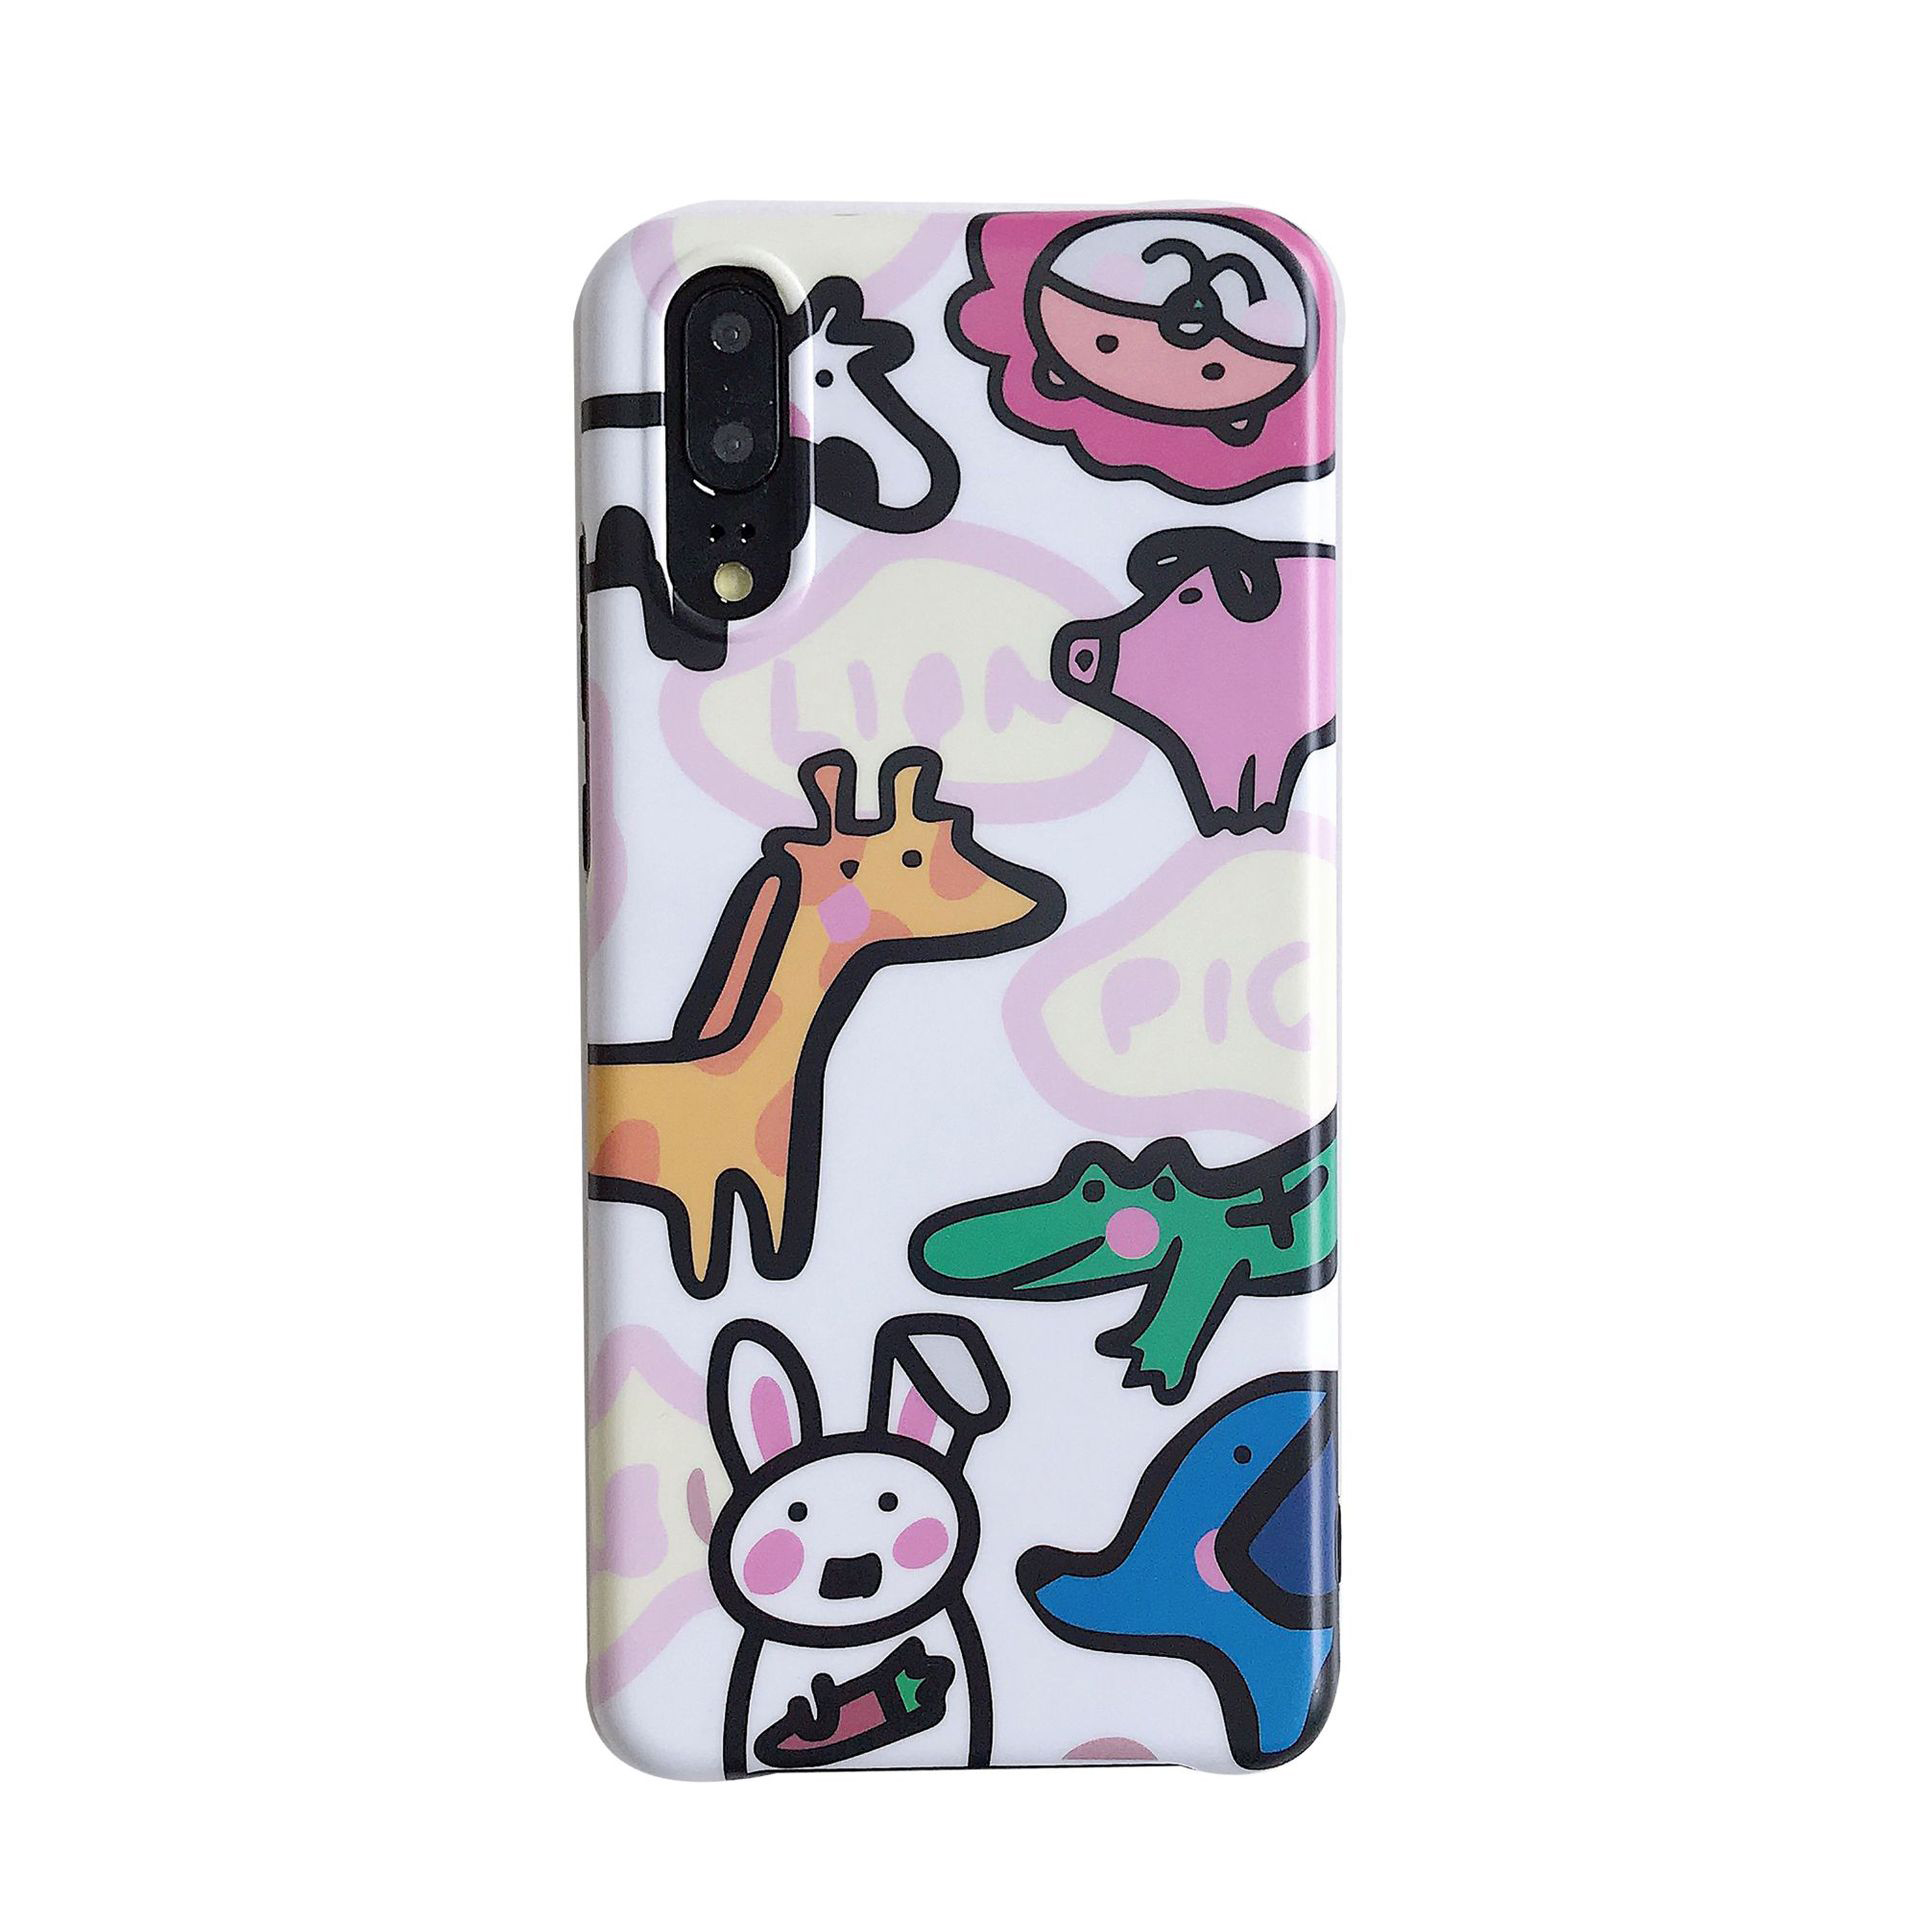 3d cartoon animal tpu case For huawei P20 lite mate 20 10 pro nova 3i 3 honor 10 case cover ins cute painted soft silicon phone in Fitted Cases from Cellphones Telecommunications